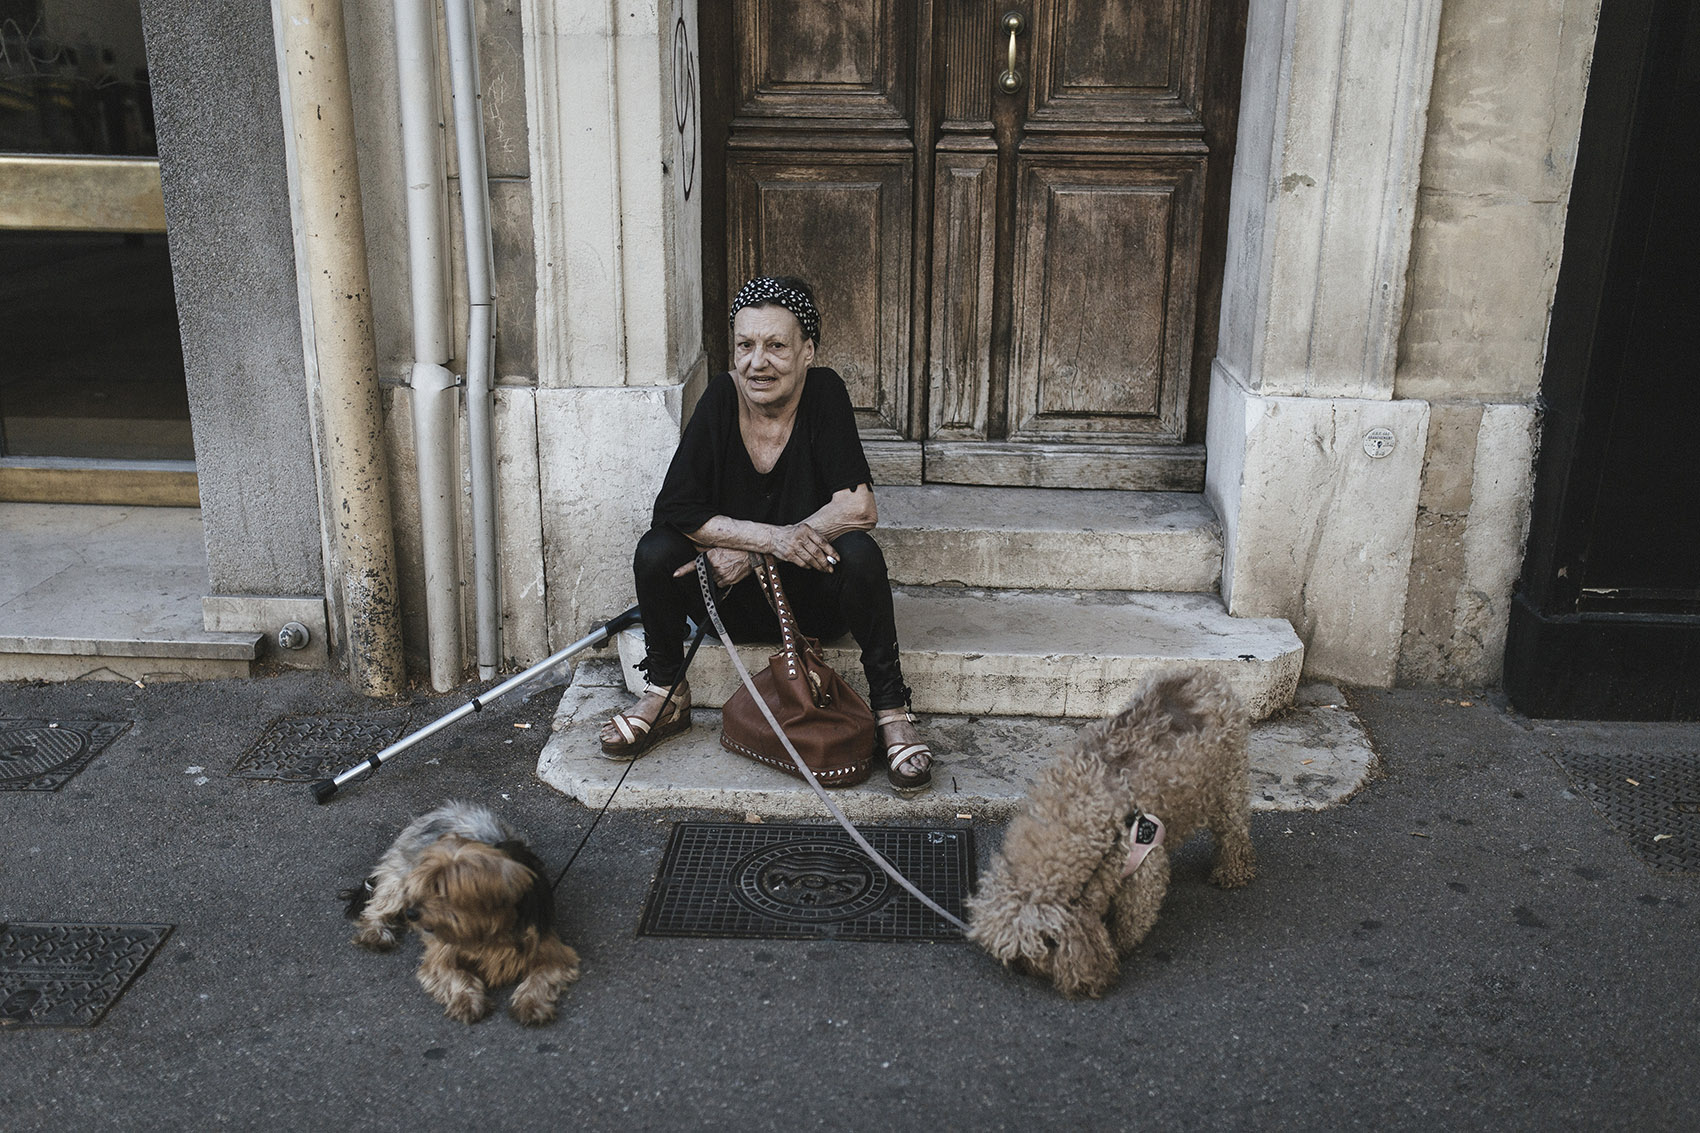 A woman with her dogs watches the street activity in the city centre.